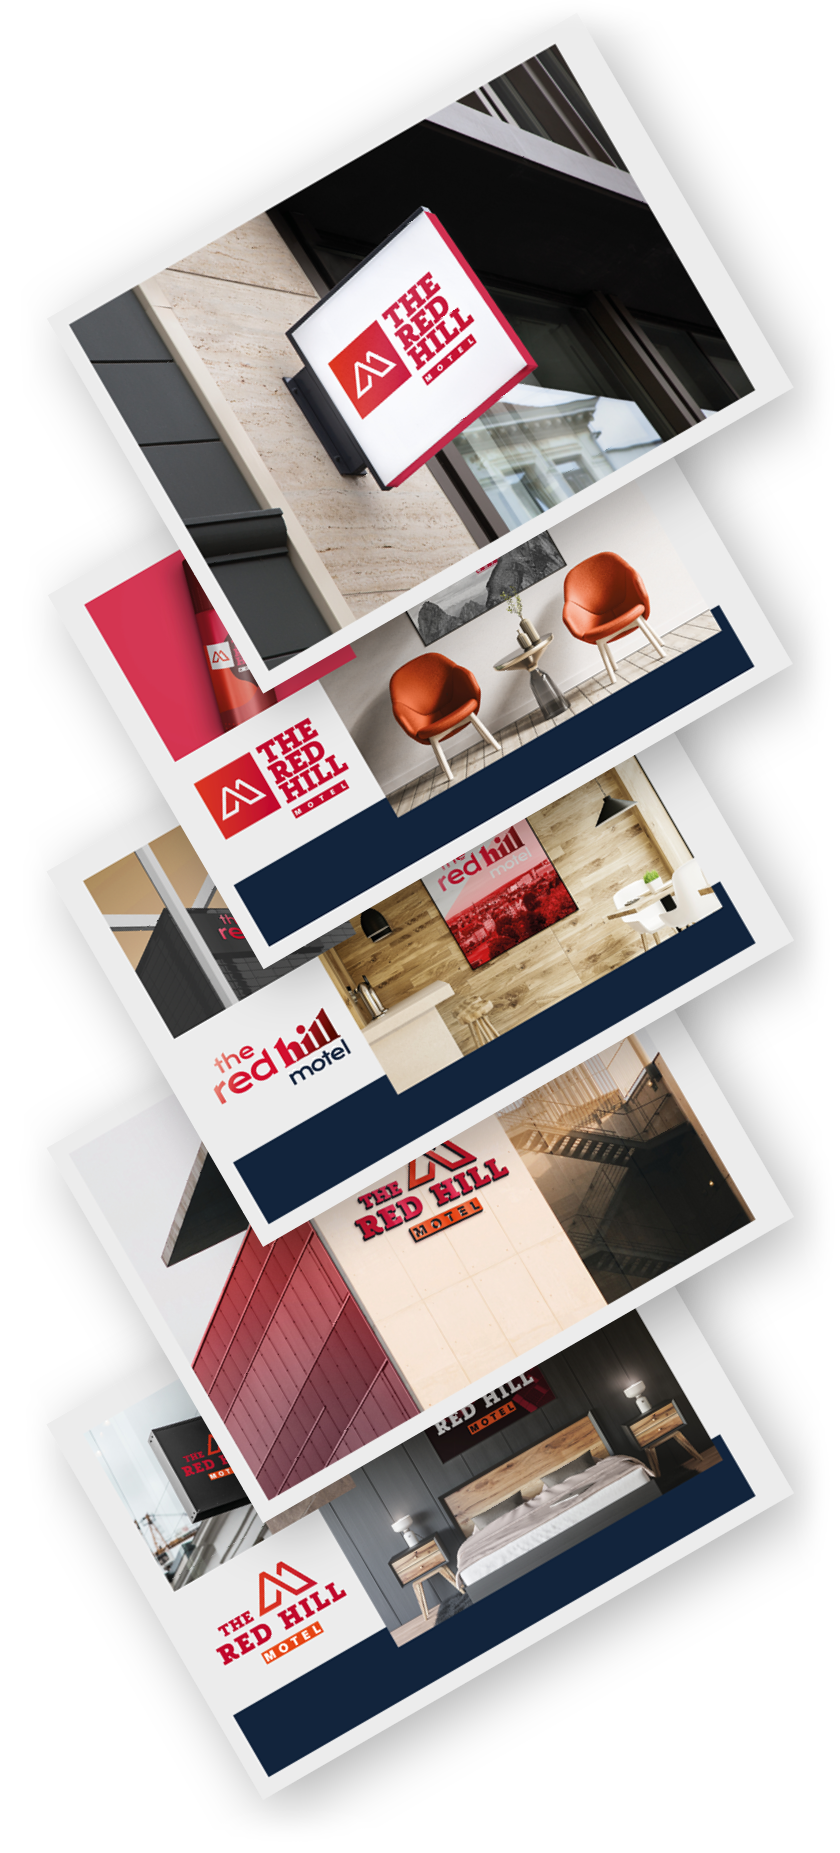 Samt&Seidel_Referenz_Treuenburg_TheRedHillMotel_Design_03